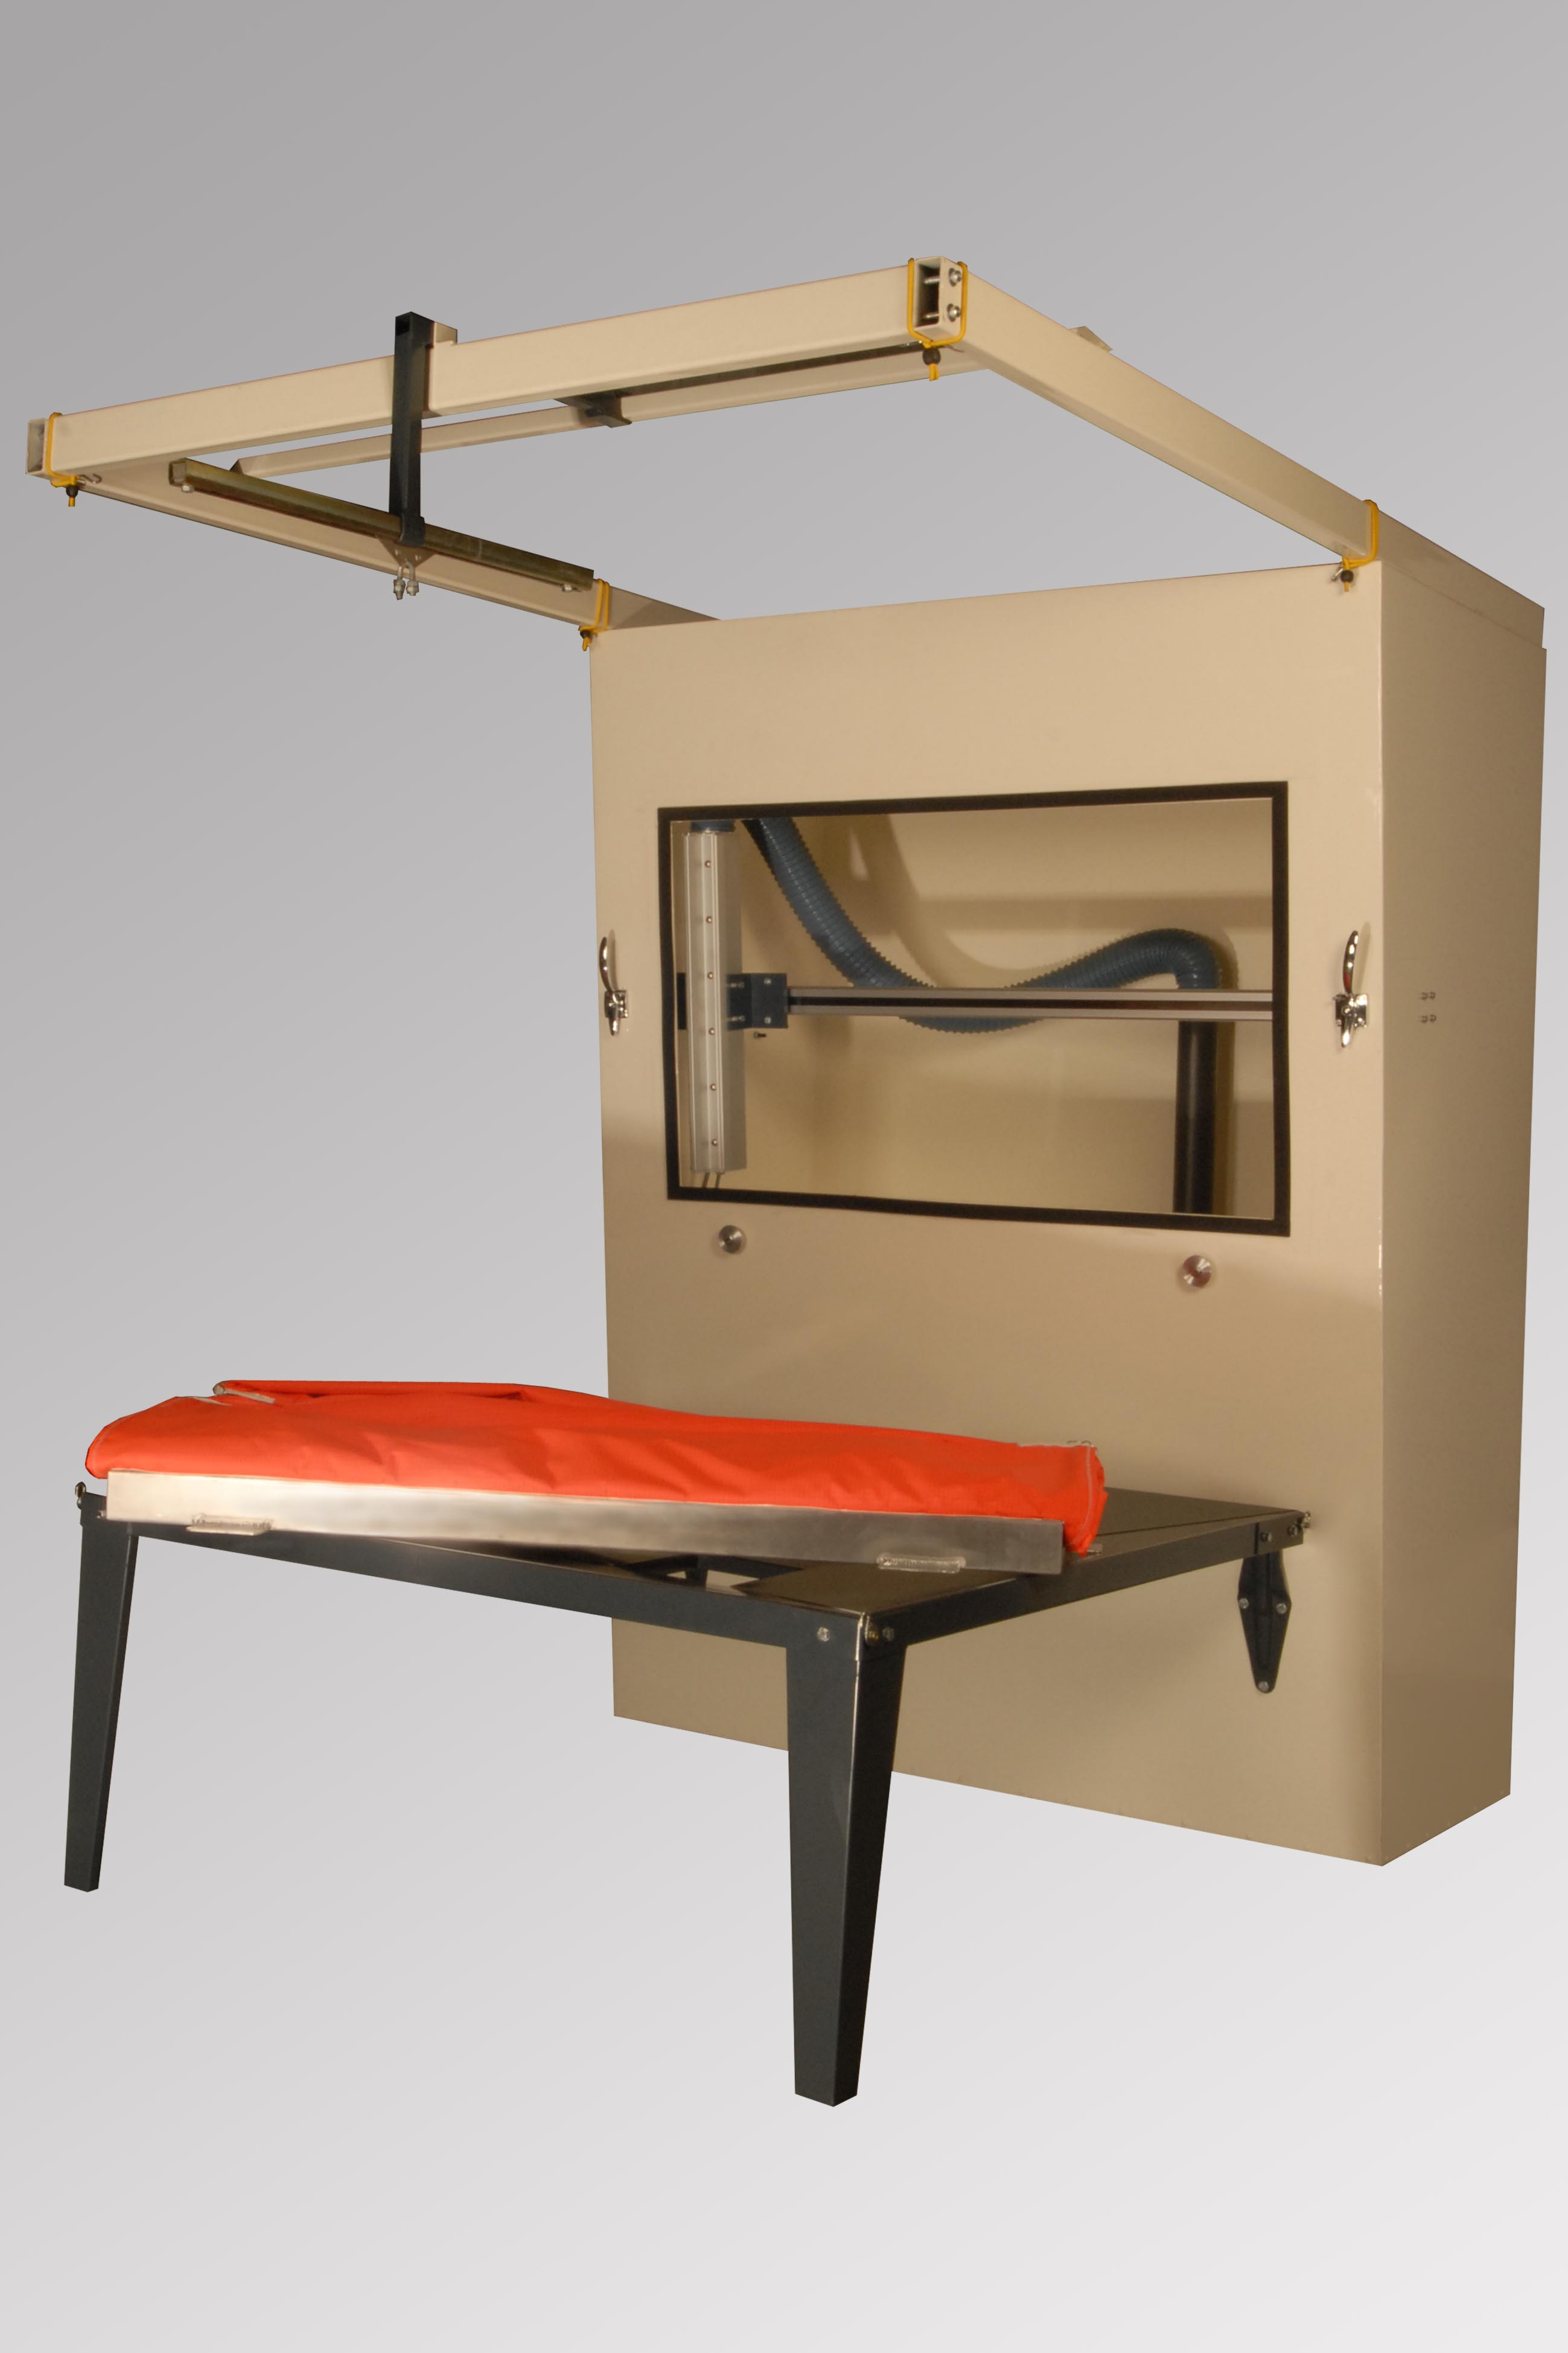 Industrial Ovens From Haviland Limited Collapsible Spray